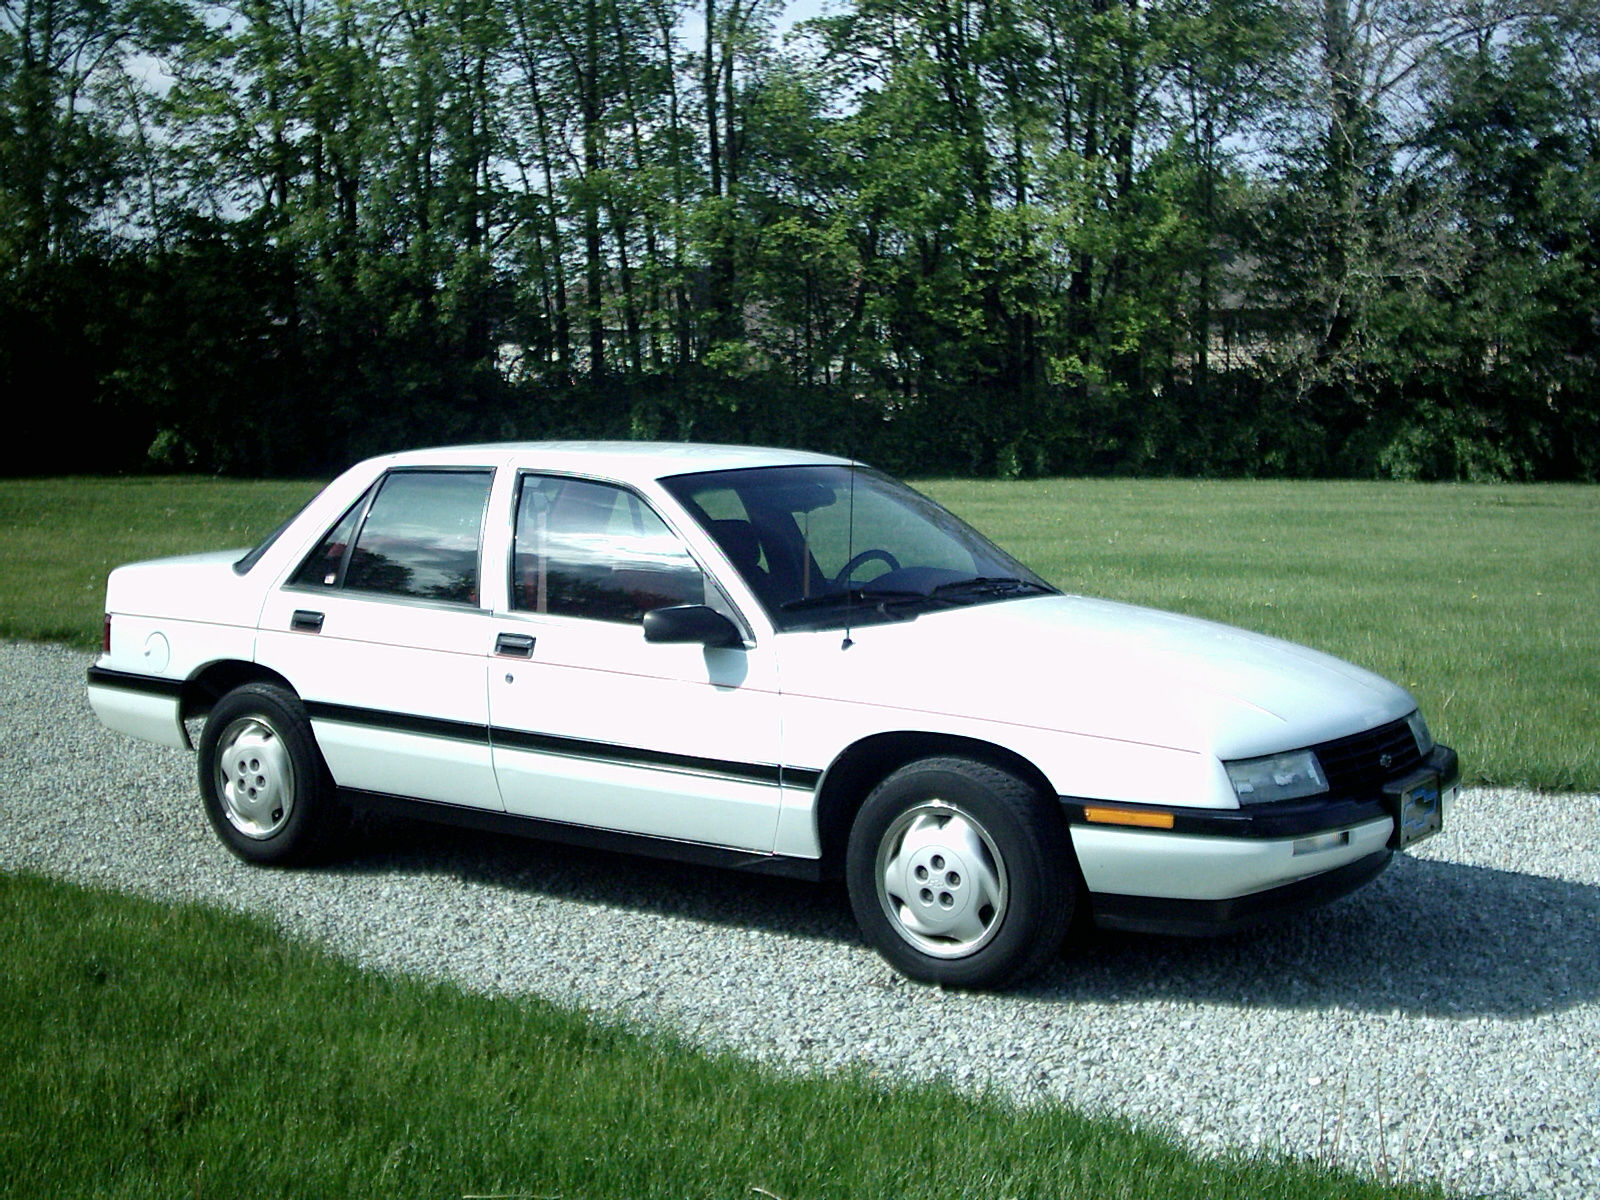 Chevrolet Corsica Wikipedia 1992 Geo Tracker Engine Diagram